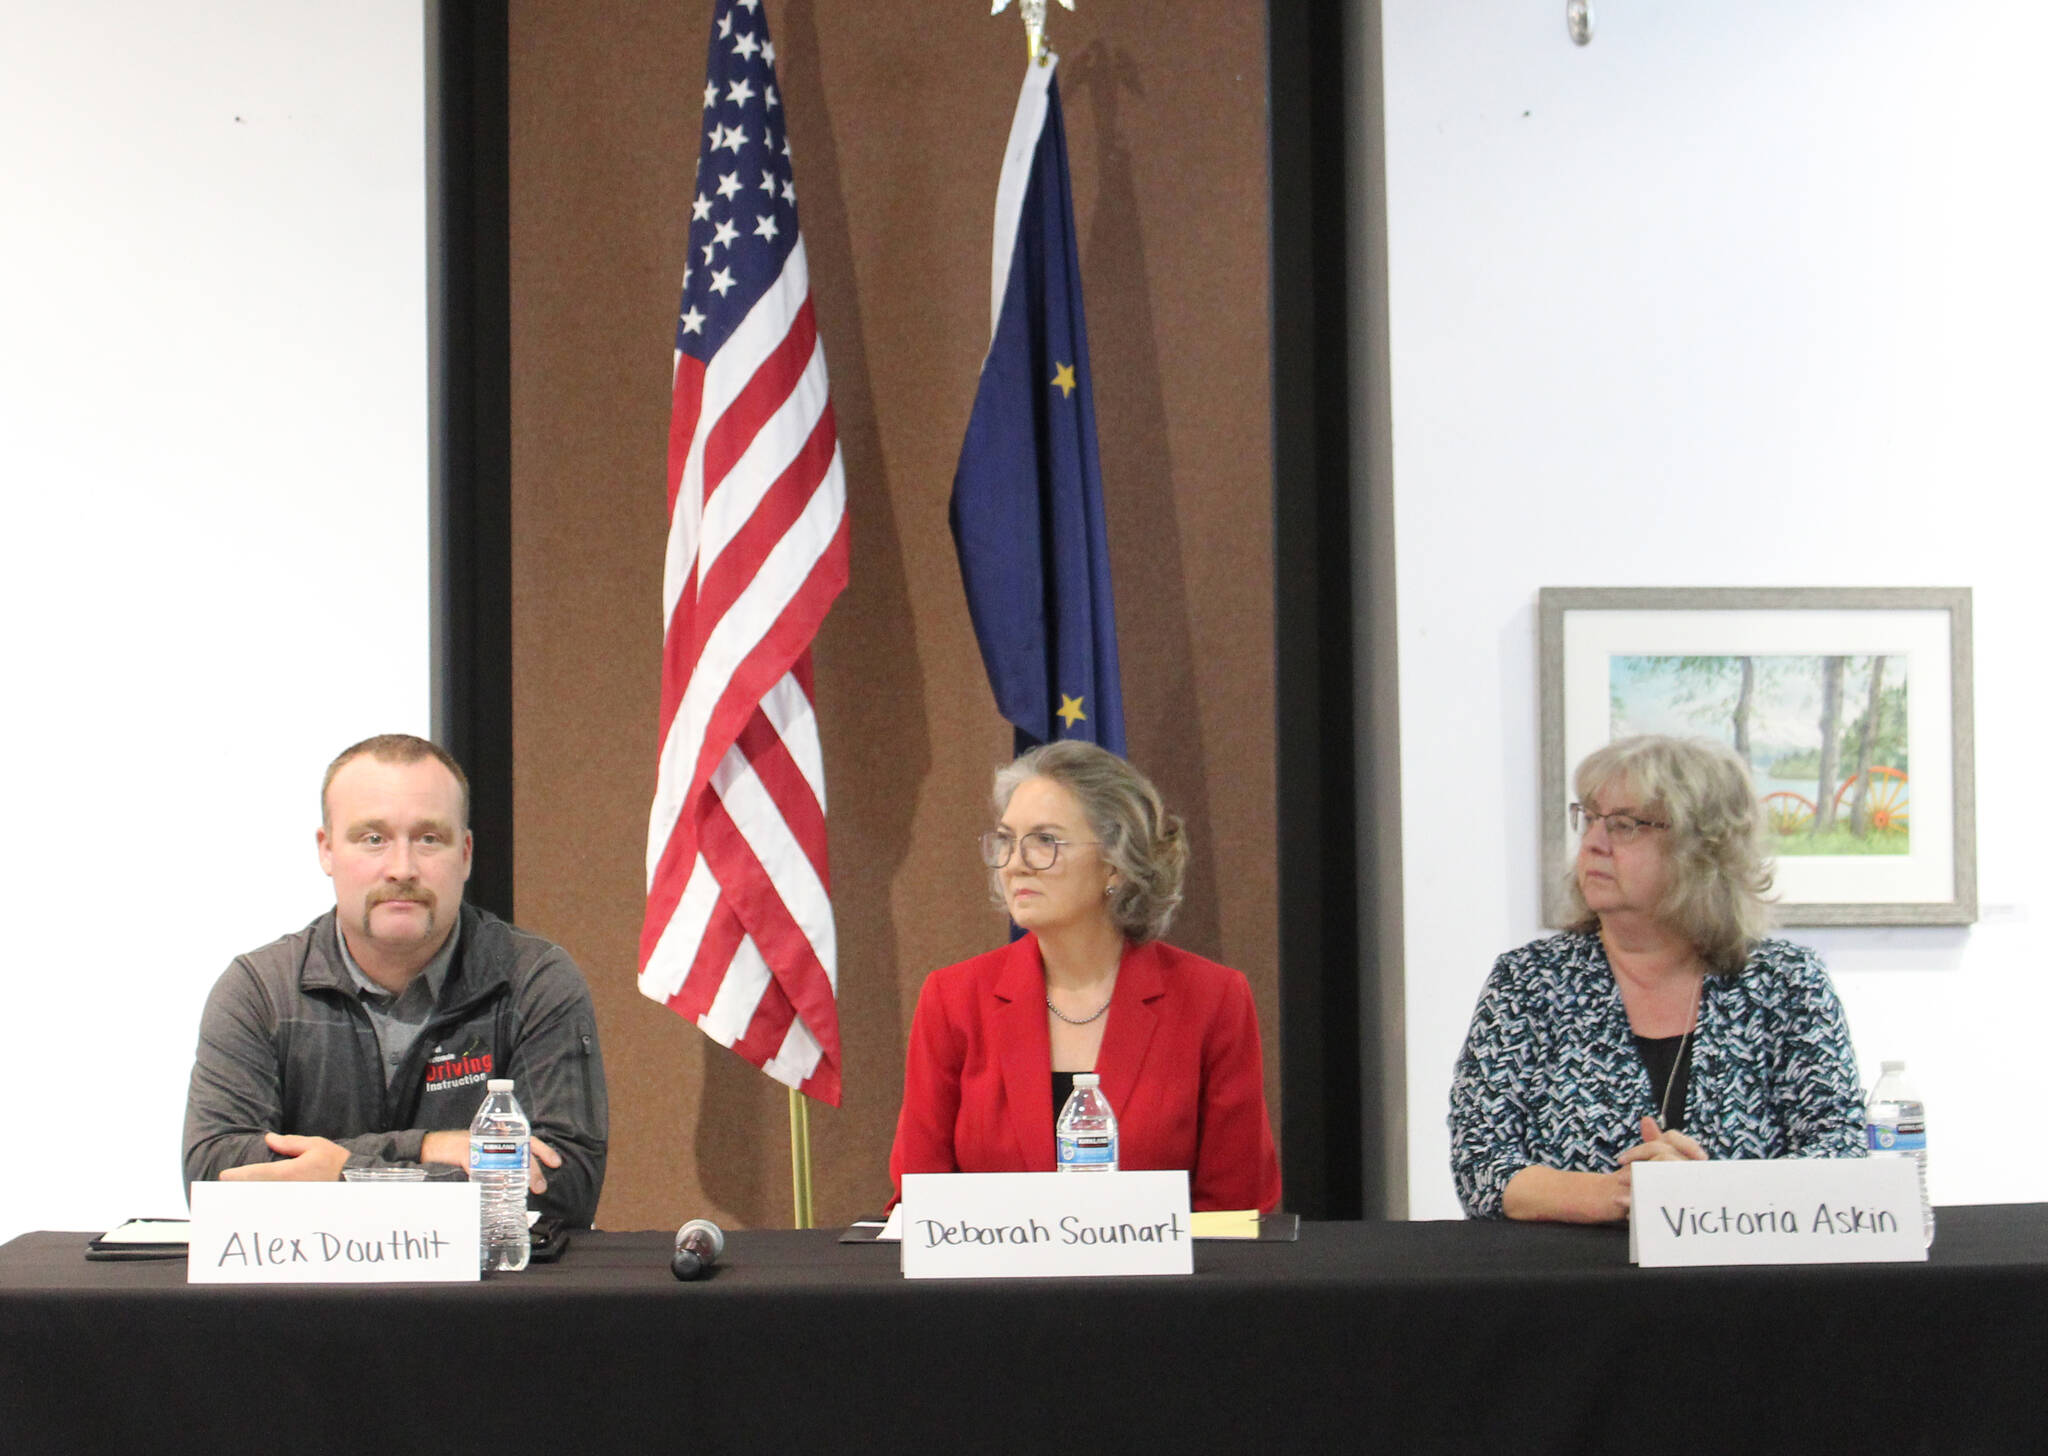 From left: Kenai City Council candidates Alex Douthit, Deborah Sounart and Victoria Askin attend an election forum at the Kenai Chamber of Commerce and Visitor Center on Wednesday, Sept. 15, 2021 in Kenai, Alaska. (Ashlyn O'Hara/Peninsula Clarion)